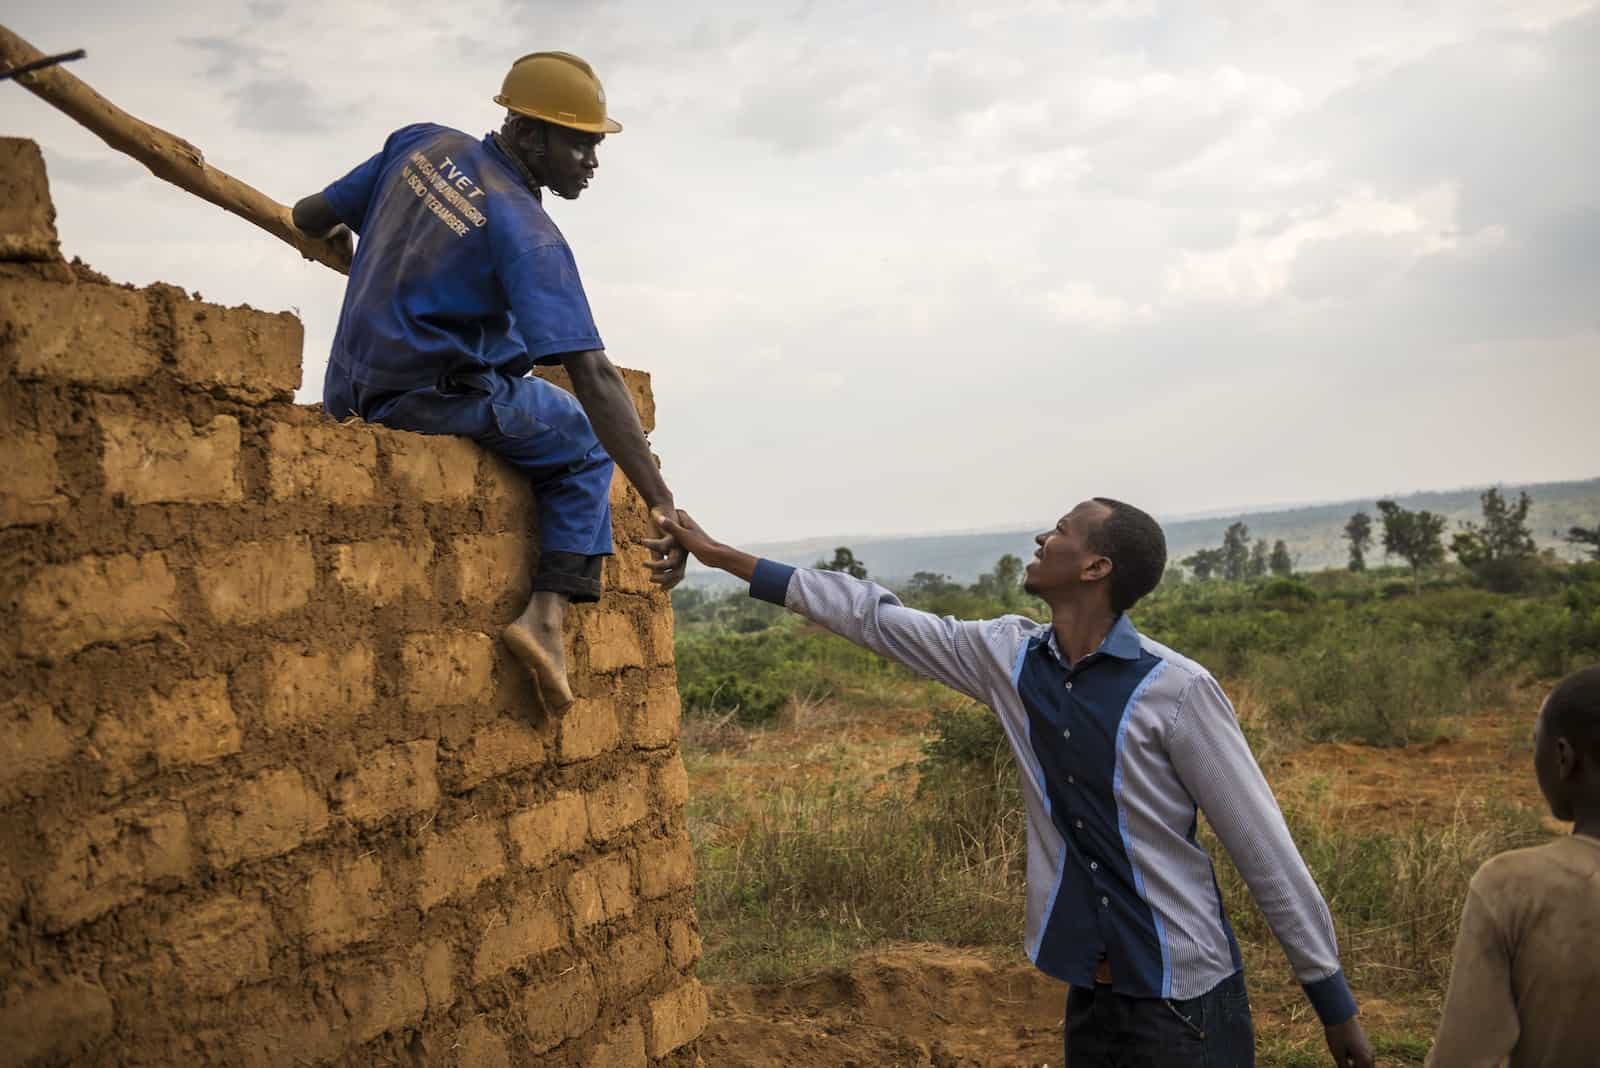 A man wearing a blue shirt reaches up and shakes the hand of a man sitting on a partially built brick wall. The man on the wall wears a hart hat and work clothes and looks down at the other man.